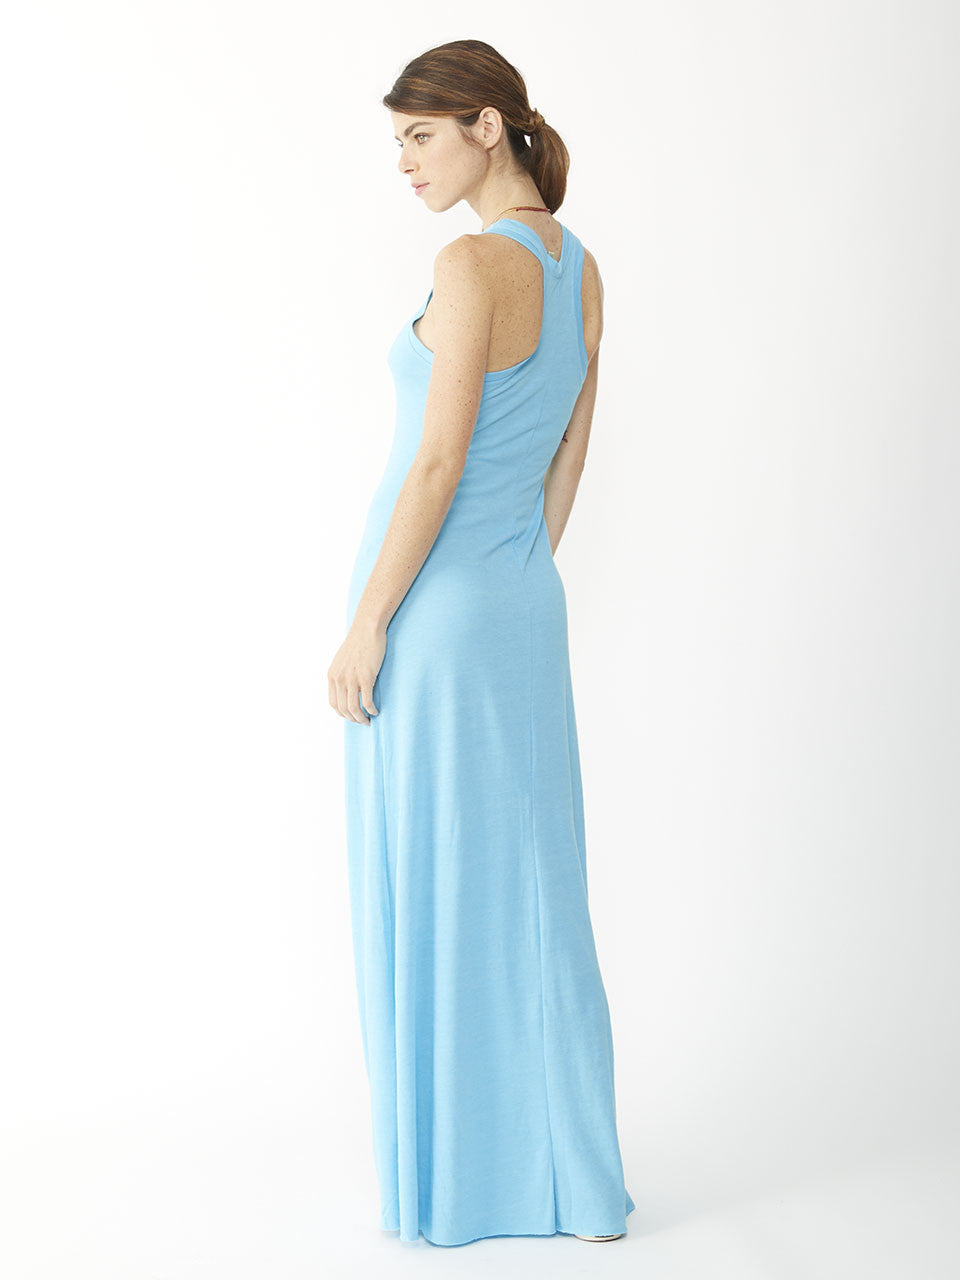 Alternative Apparel - Eco-Jersey Maxi Dress, Eco True Aquarius Blue - The Giant Peach - 3